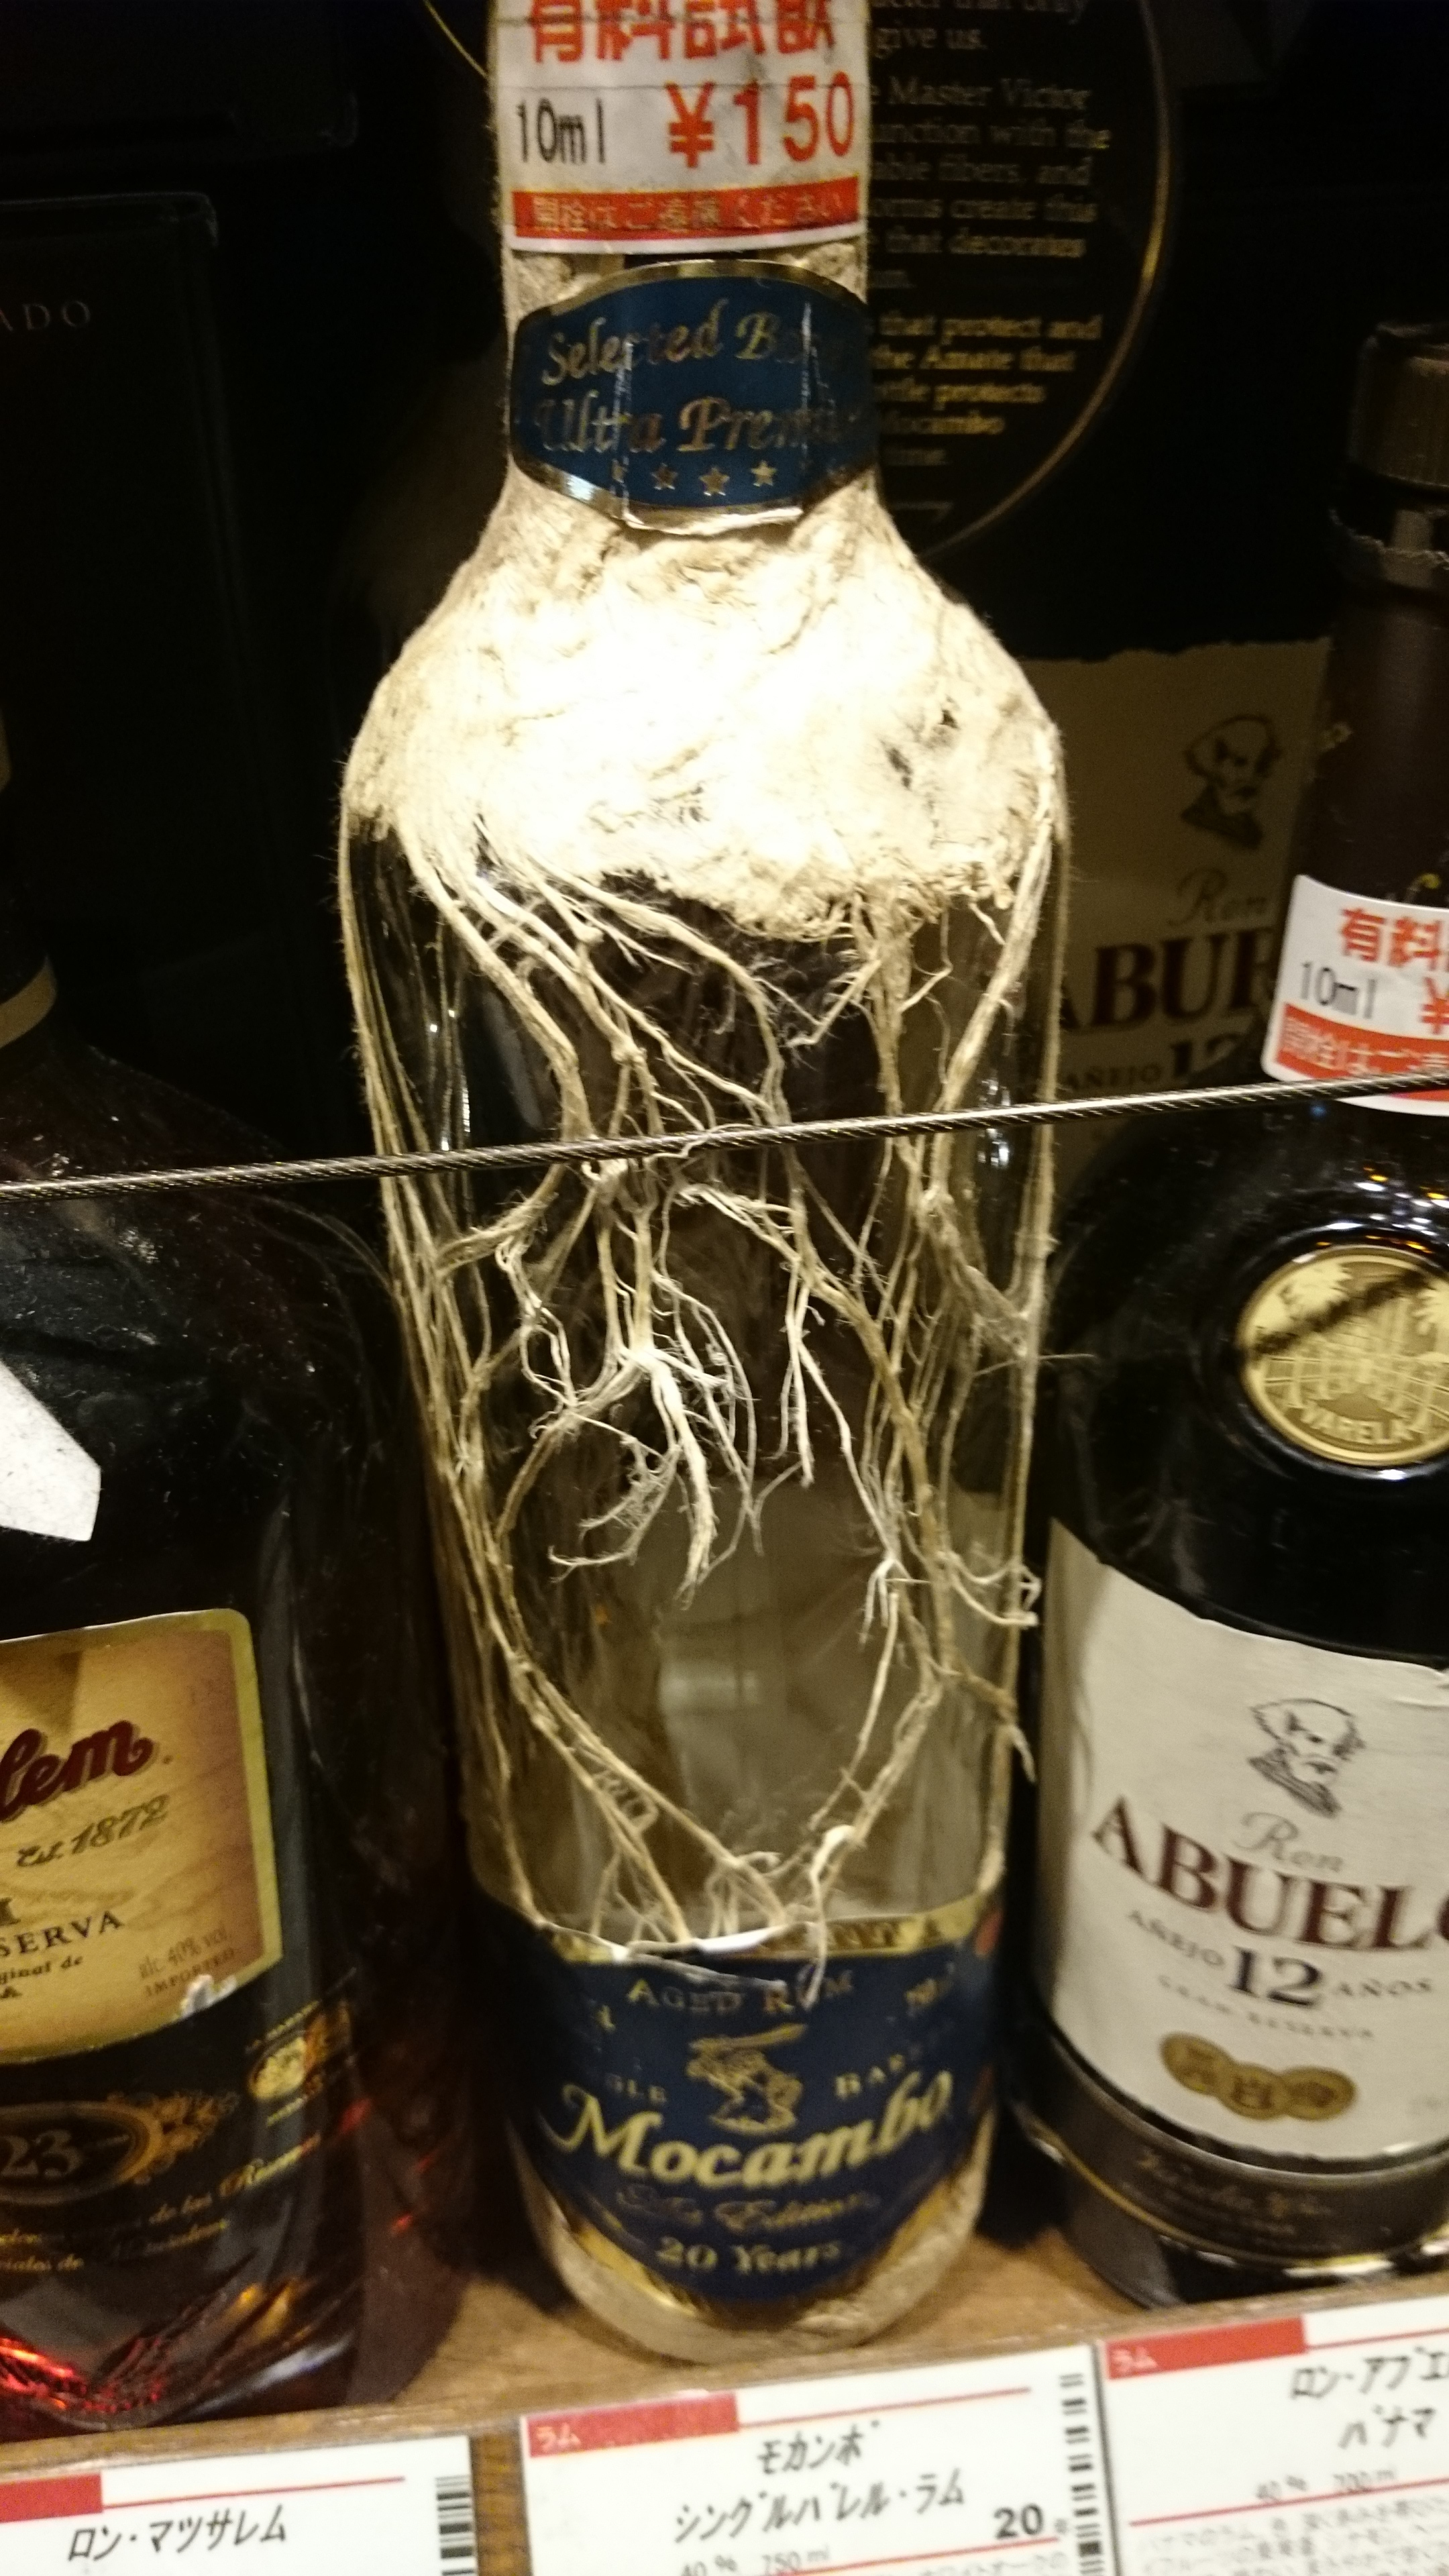 Mocambo 20 Art Edition Rum Ratings High: News 1 How To Be Single Convince